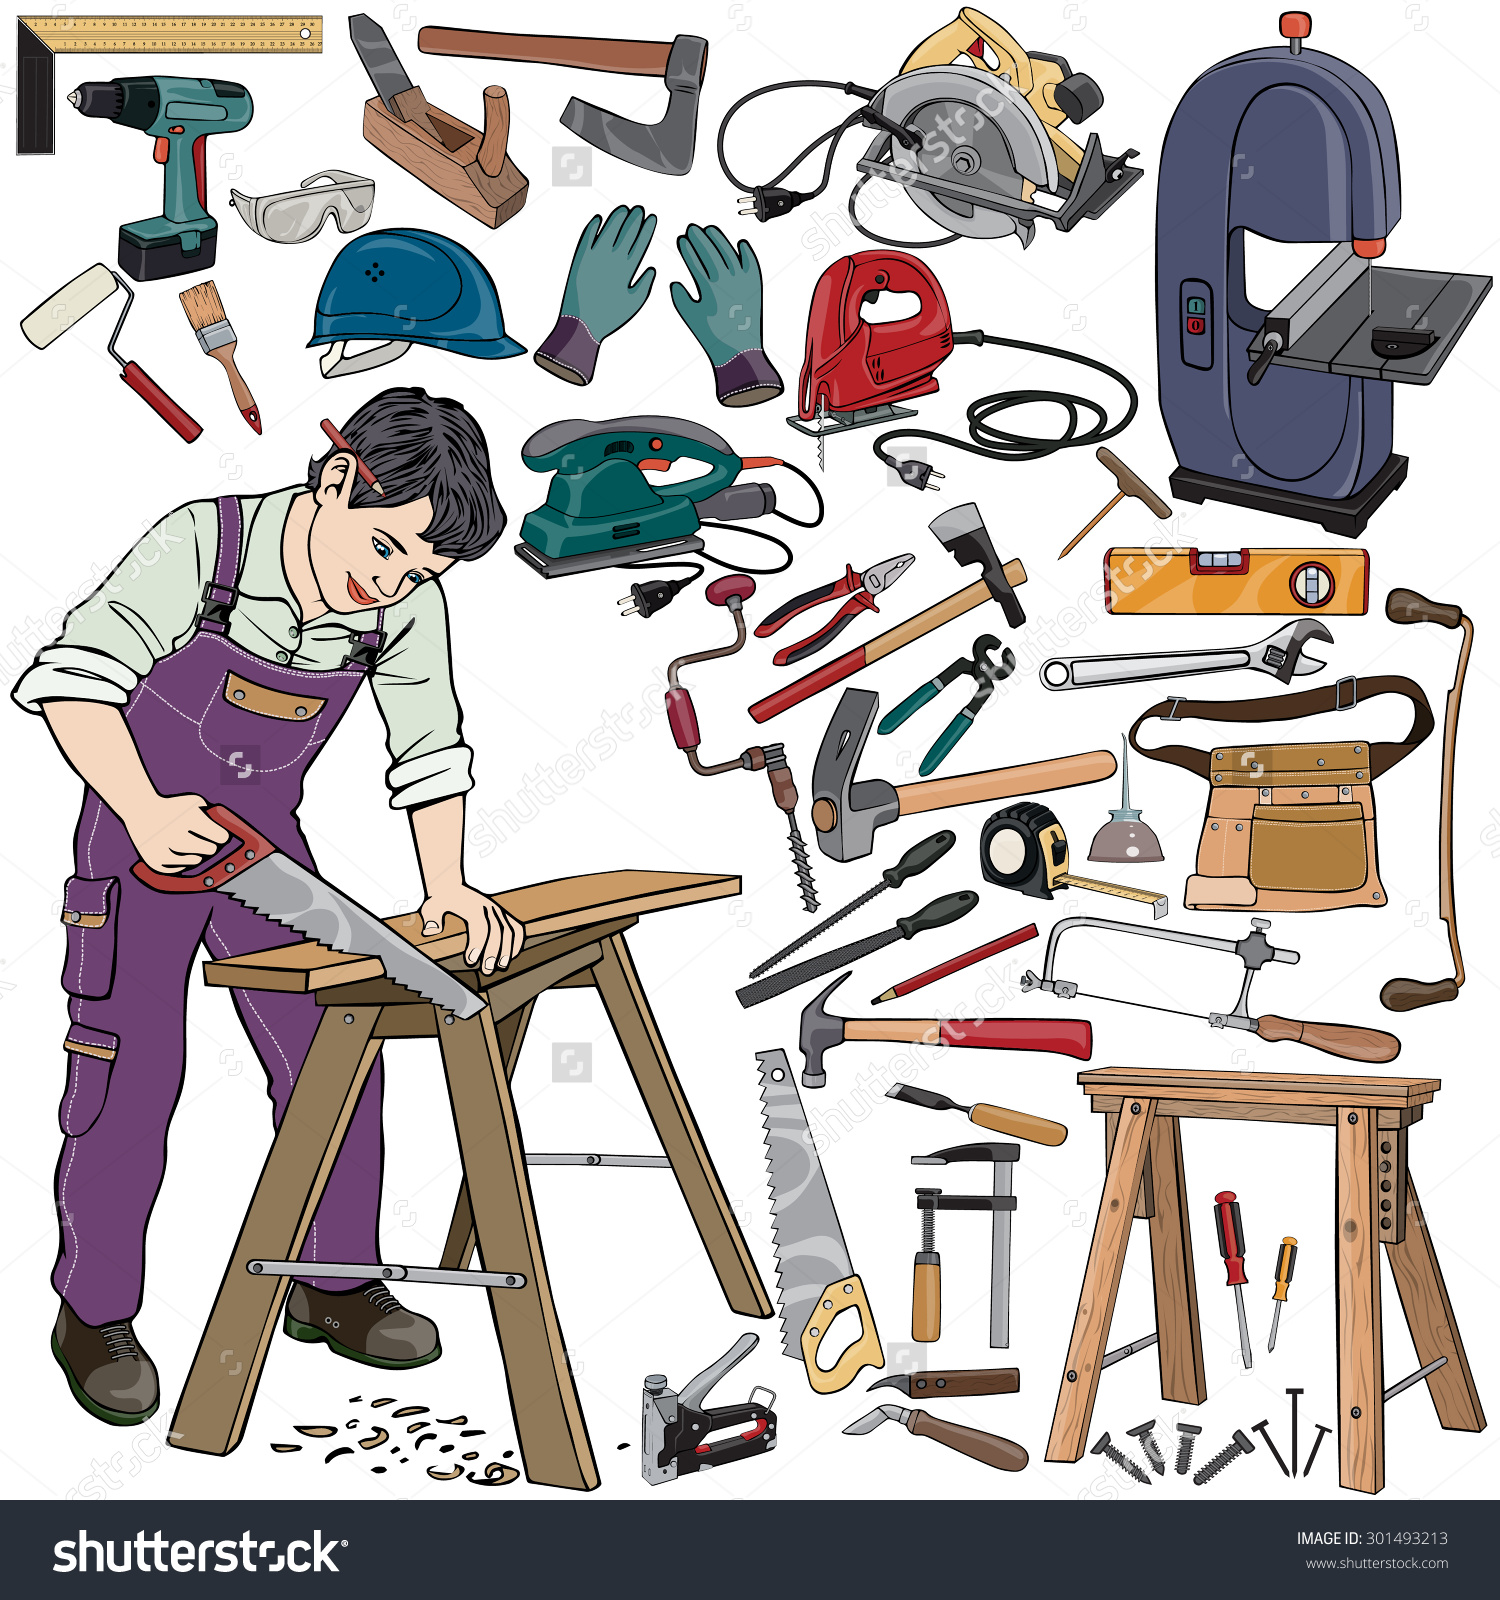 Vector Illustration Carpenter Gear Cartoon Concept Stock Vector.